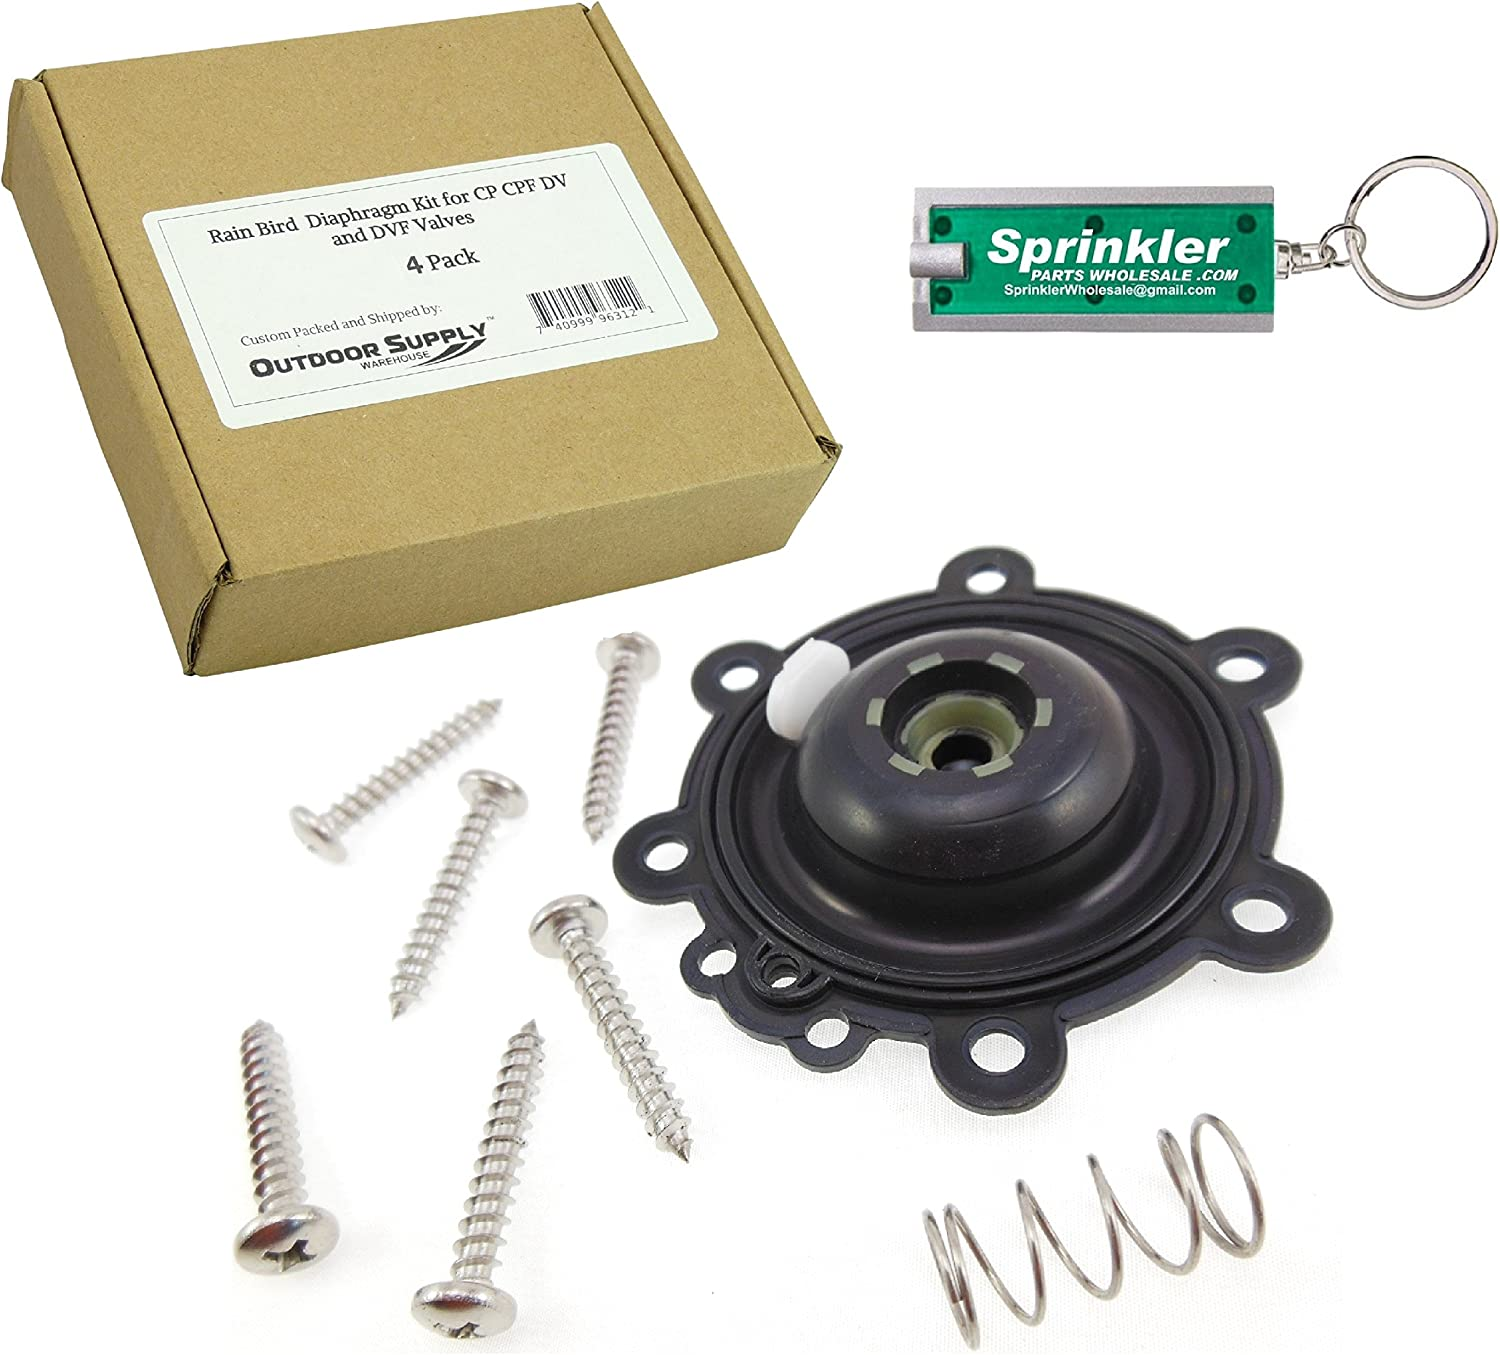 Rain Bird Diaphragm Repair Kit for CP CPF DAS DV and DVF Valves 3 4 1 with a Free SprinklerPartsWholesale Flashlight Keychain DRK-CP B6048 210746-03 21074603 170817 4